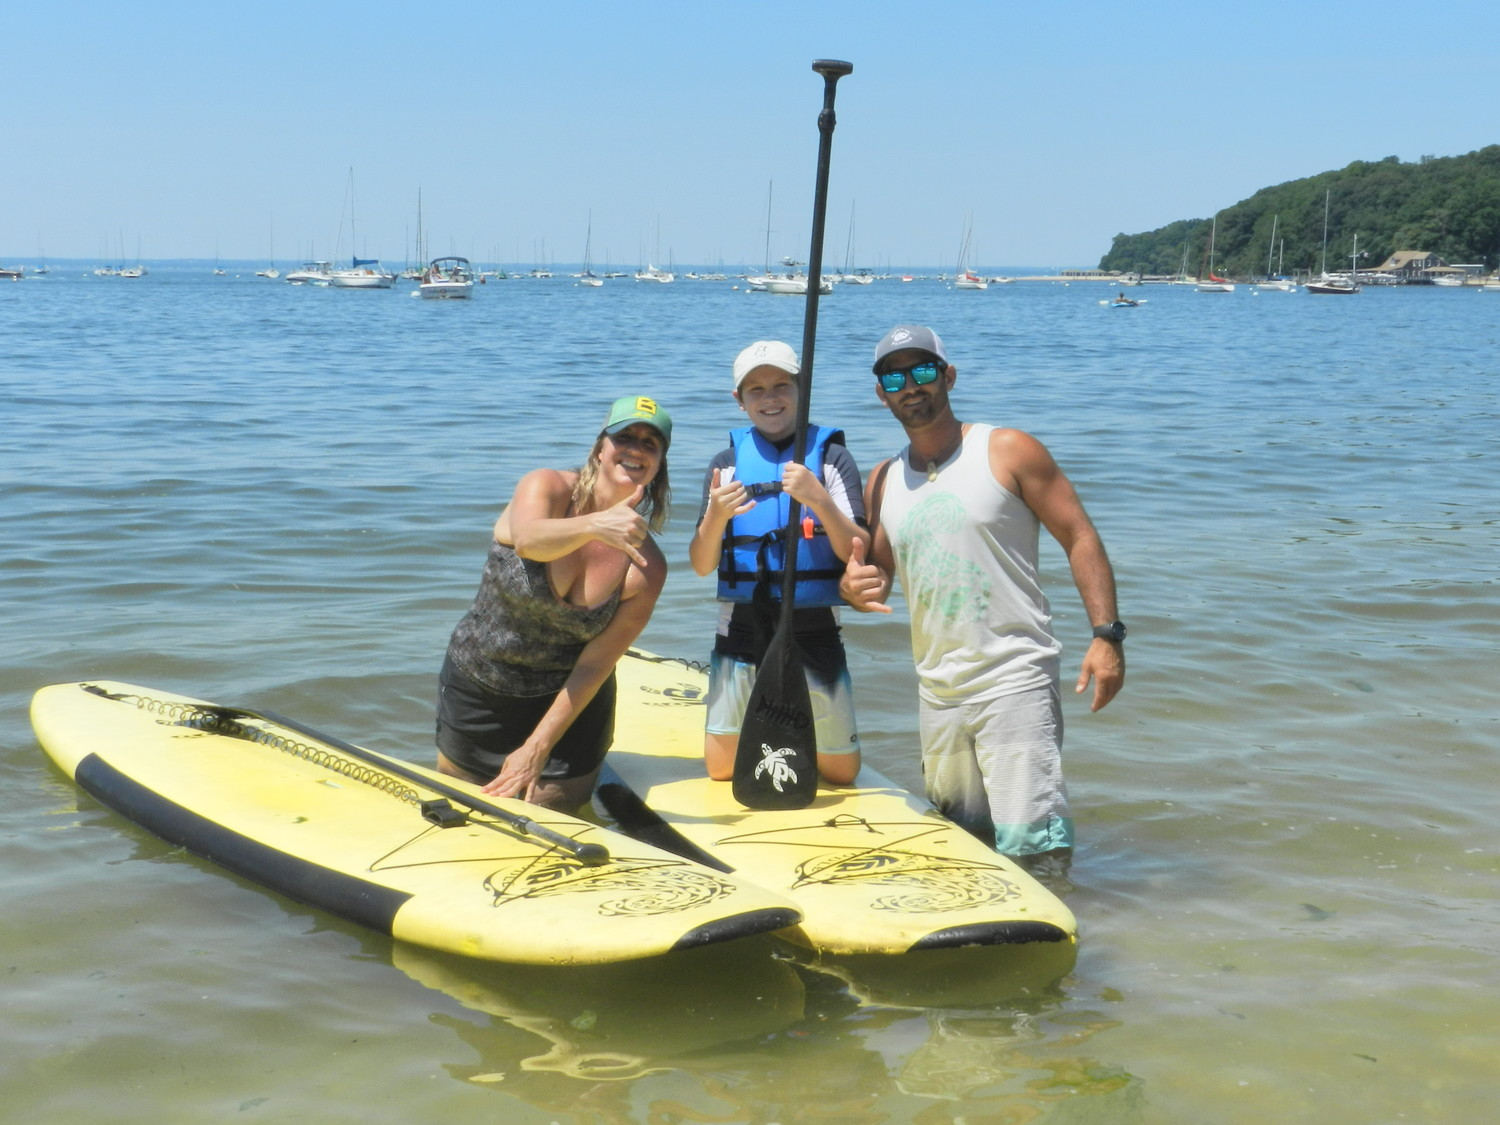 Linda Civigliano, StaS McClone, 12, and owner of Kostal Paddle, J.M. Kostaloas, were hanging loose in Hempstead Harbor while taking a ride on a pair of paddleboards.